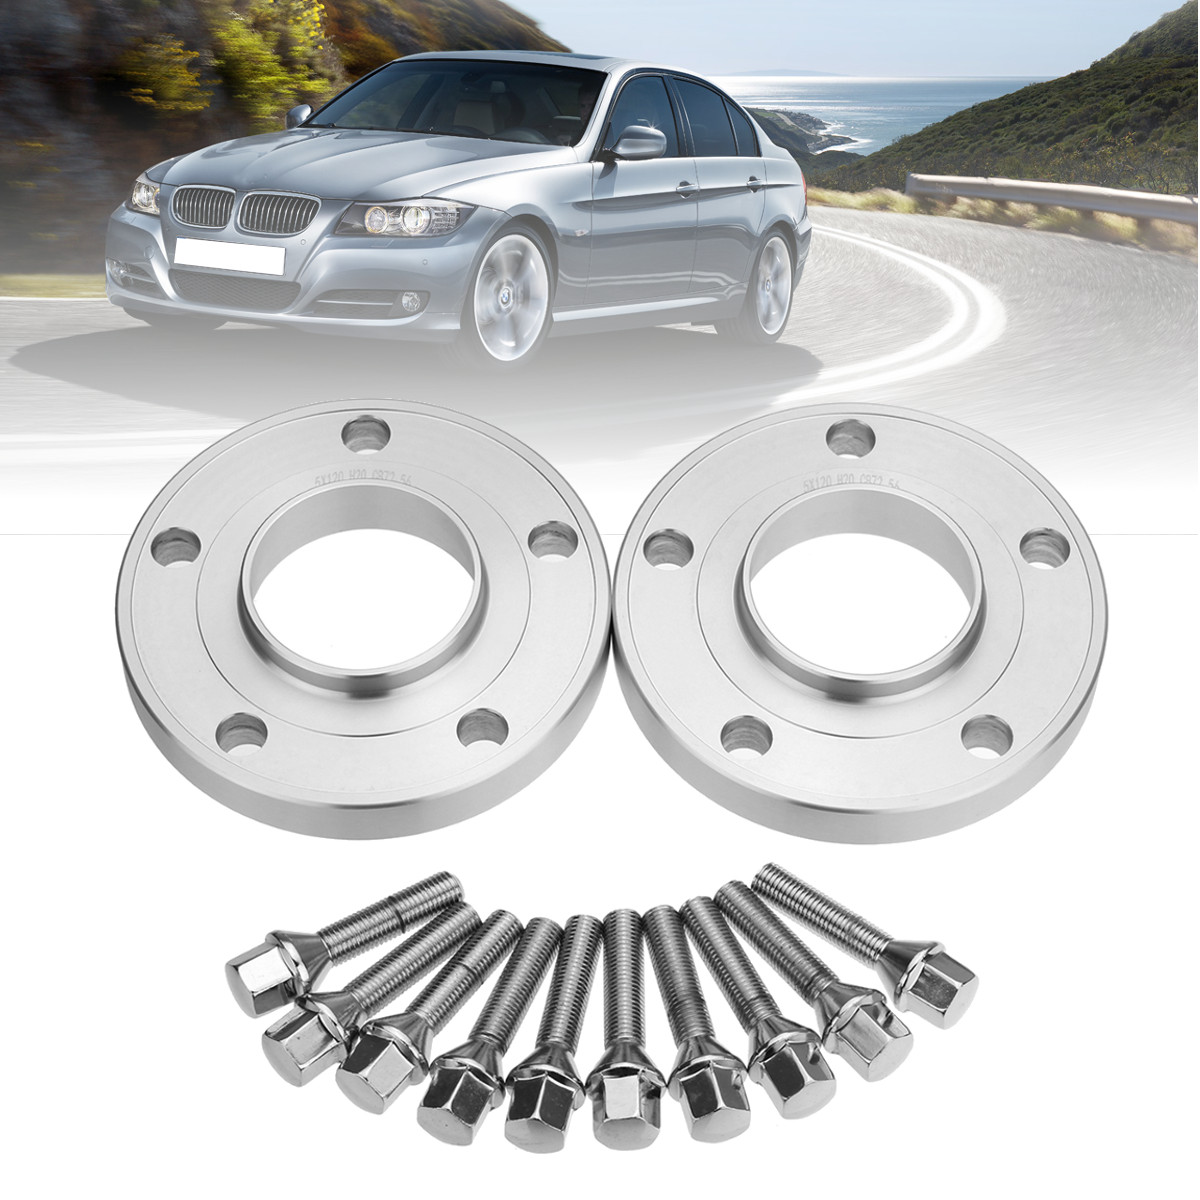 2PCS 10/12/15/20mm 5x120 PCD Wheel Spacers Hubcentric Kit with Blot Alloy For BMW 1 3 <font><b>5</b></font> <font><b>6</b></font> 7 8 Series Z3 Z4 Z8 E90 image